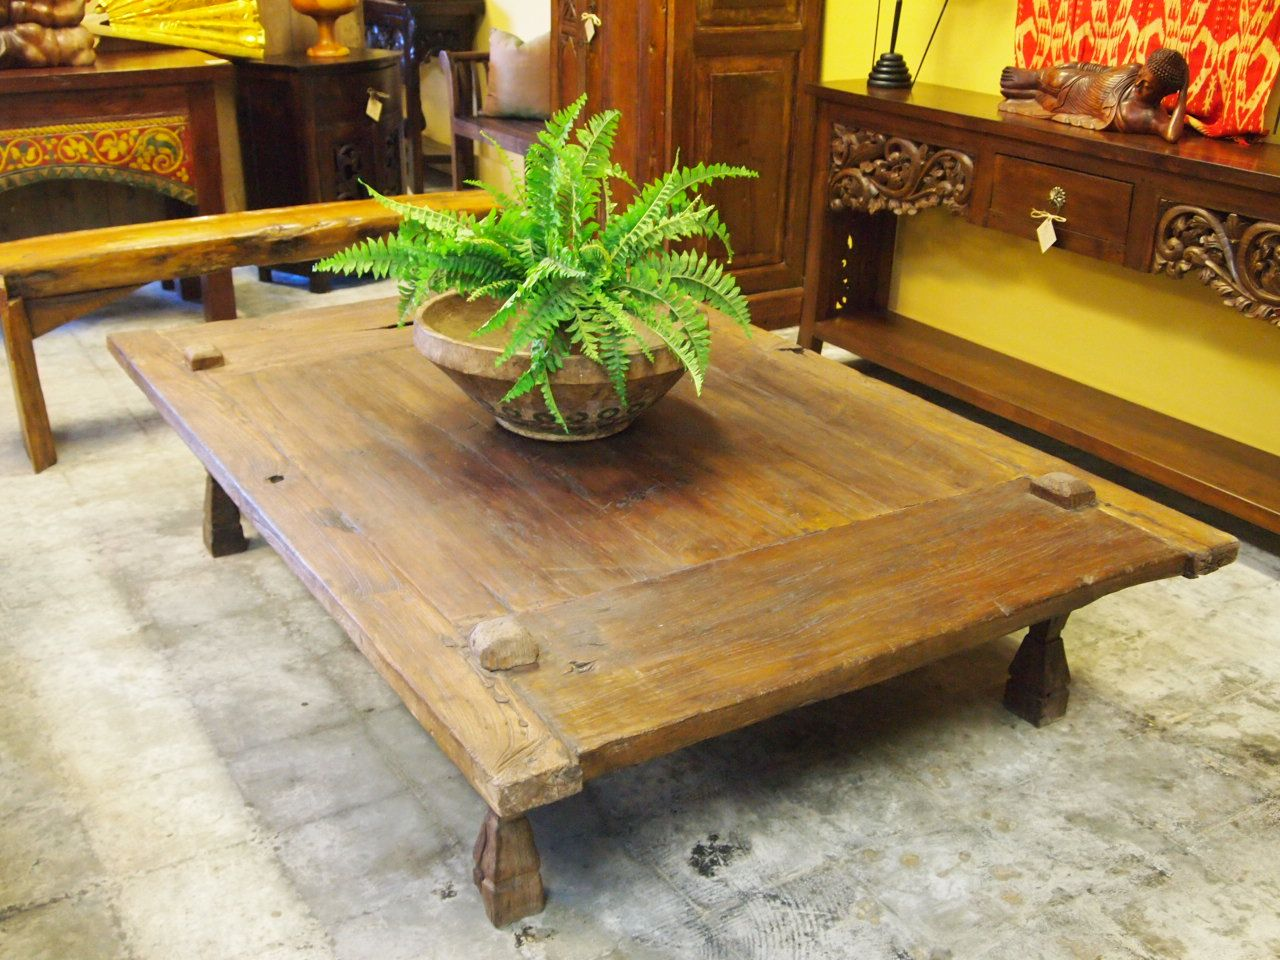 This Antique Weaving Table Has A Great History And Makes A Beautiful Coffee Table Visit Gadogado Co Indonesian Furniture Bali Furniture Antique Coffee Tables [ 960 x 1280 Pixel ]